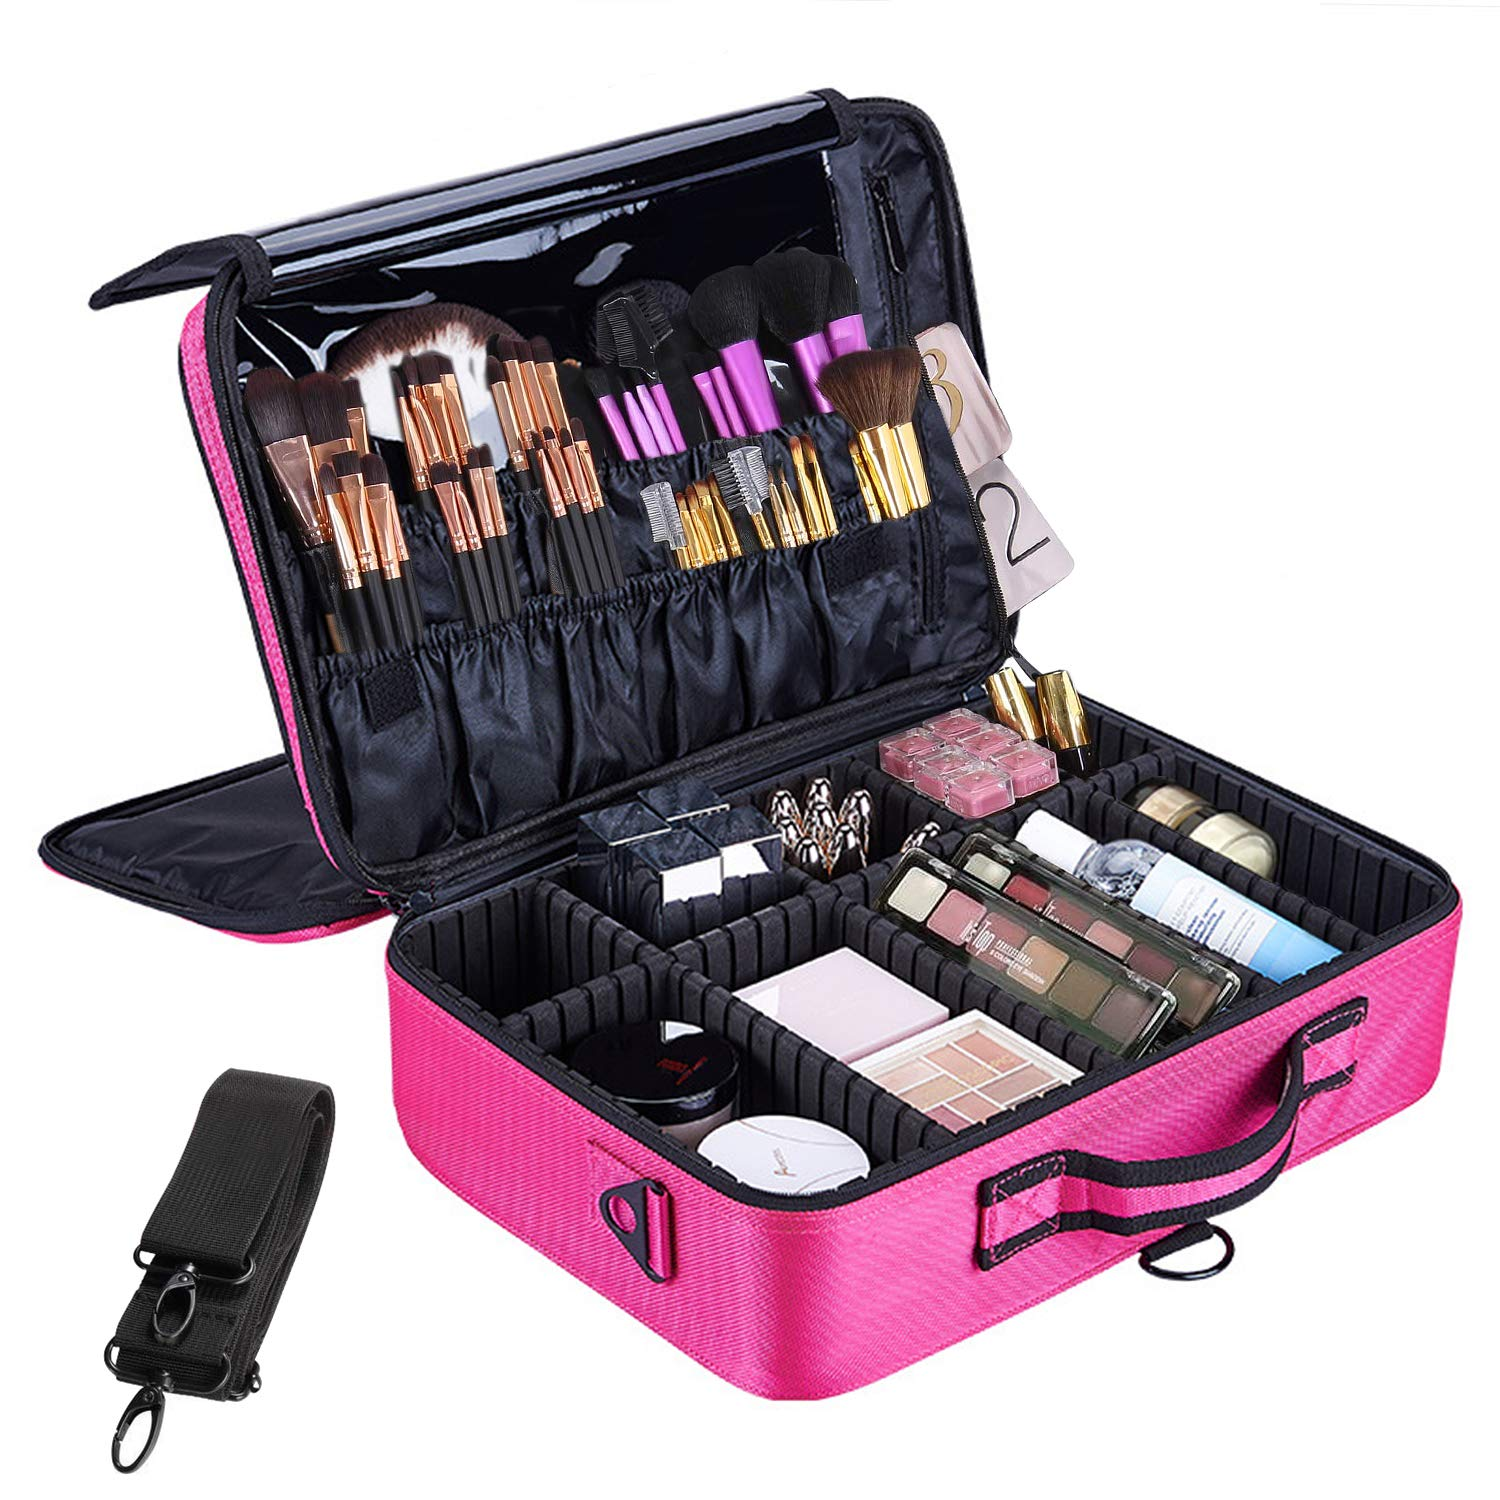 Makeup Train Case 3 Layer Waterproof Large Capacity Travel Cosmetic Case with Shoulder Strap, Portable Makeup Box Storage Organizer with Removable Dividers for Brushes Accessories Daily Use.